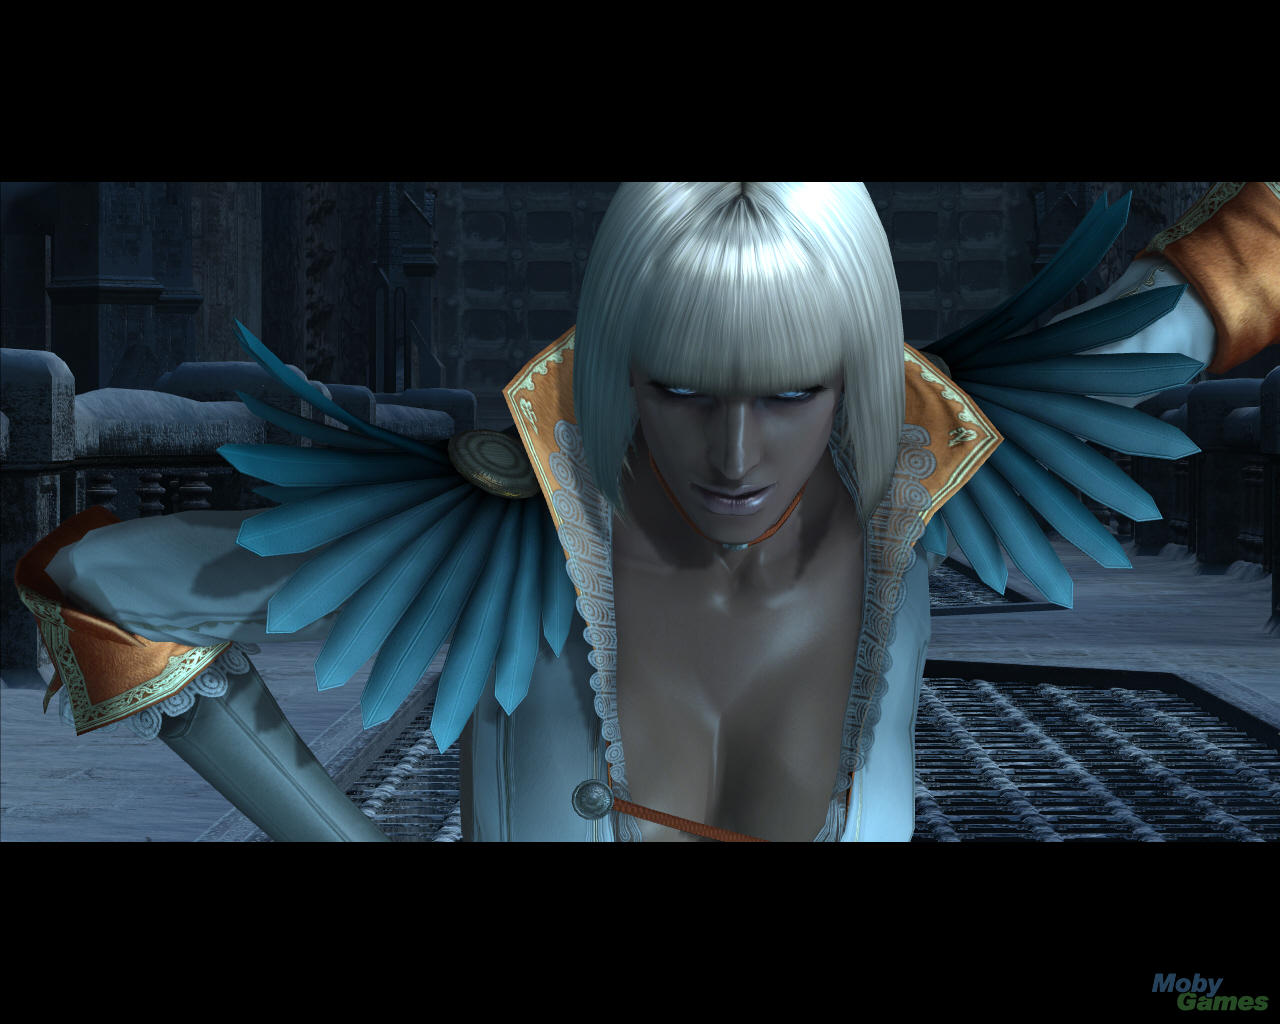 the sexiest videogame characters - Page 11 - NeoGAF Devil May Cry 4 Gloria